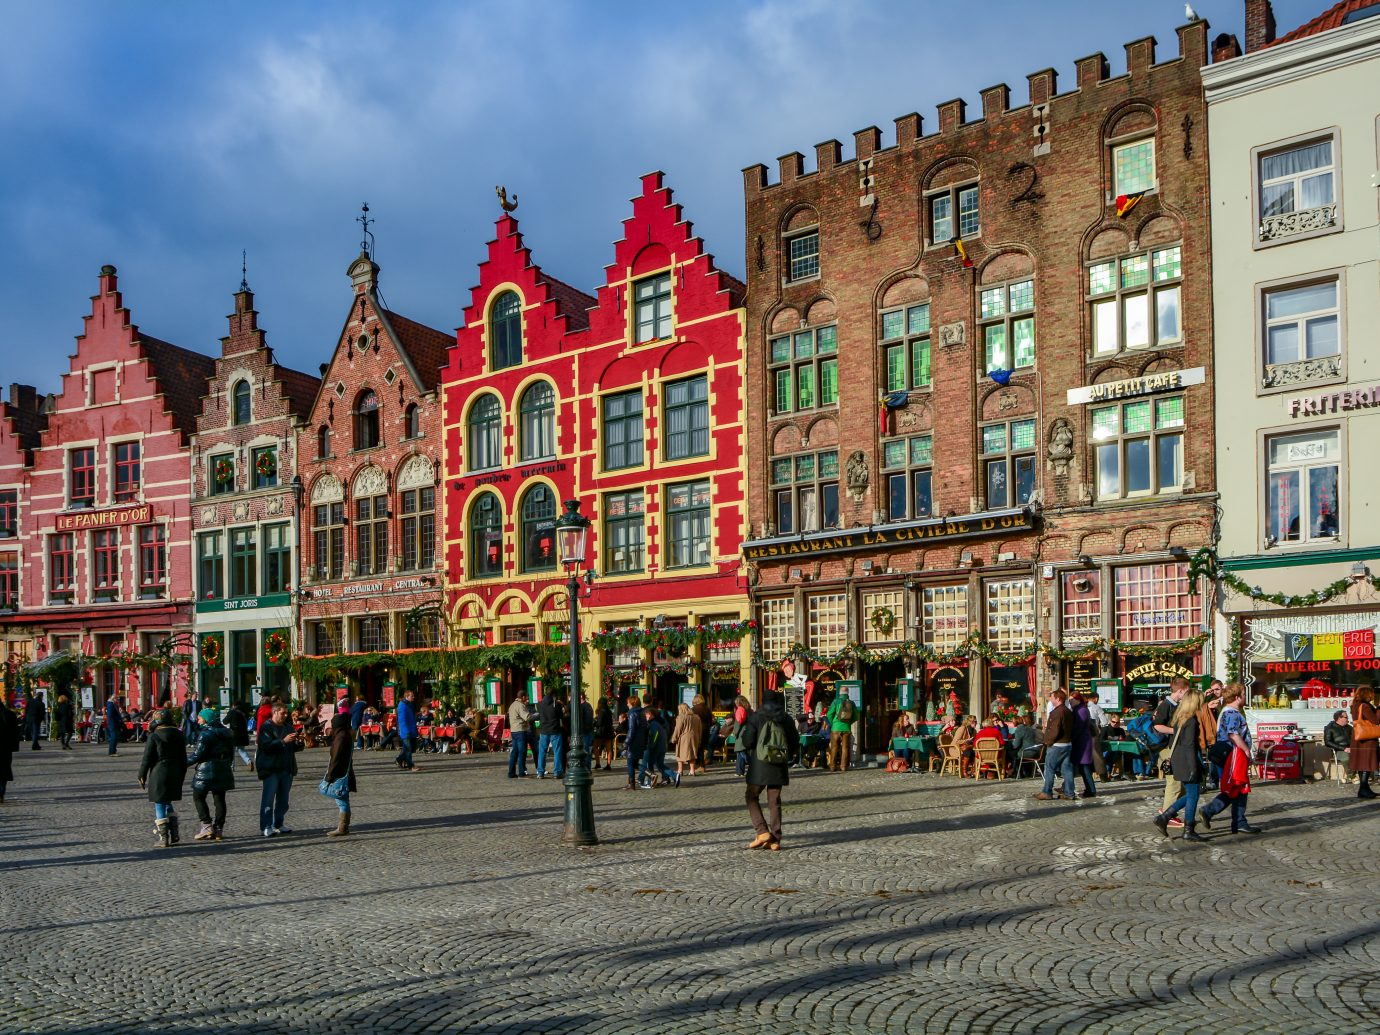 Medieval style buildings near the market place (Grote Markt) in Bruge. Bruge is the capital city of the province of West Flanders in the Flemish Region of Belgium.